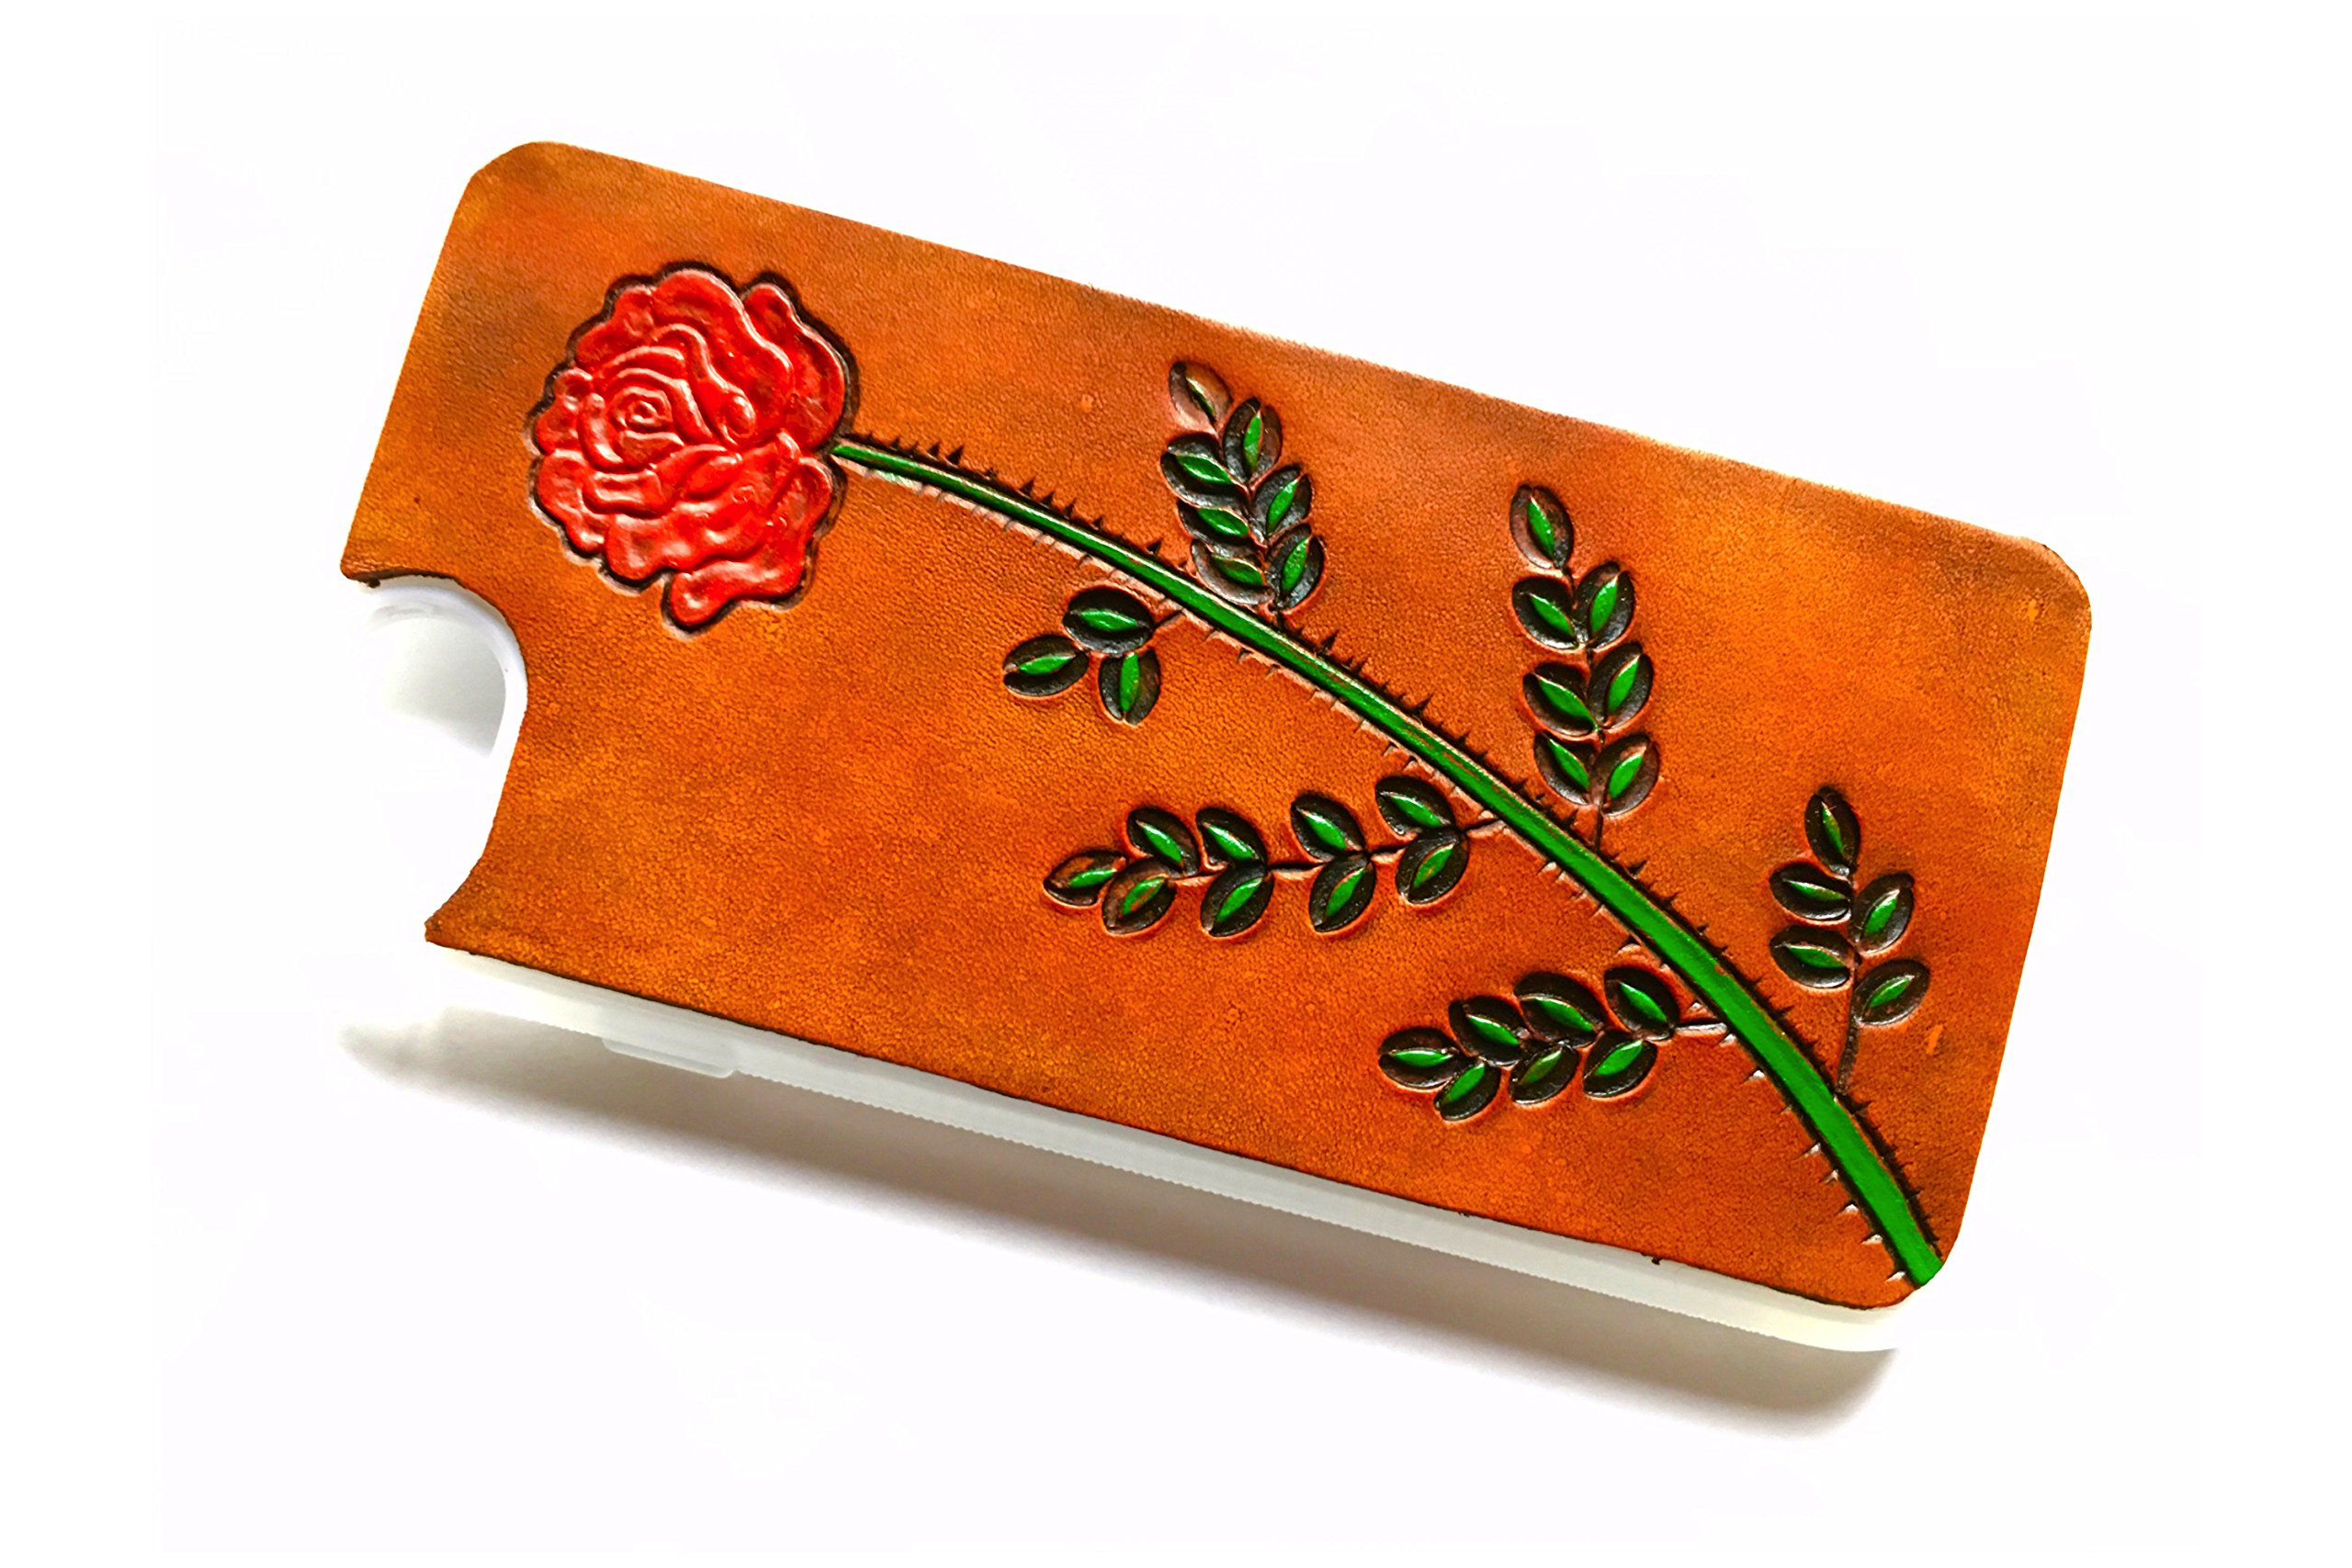 Leather iPhone 6s Plus/iPhone 6 Plus Case | Red Rose | The Lodgepole Case | Tan Handmade 5.5'' Hard Back Slim Fit Silicone Edges Protective Cowhide Leather iPhone Case by Lodgepole Leathercraft